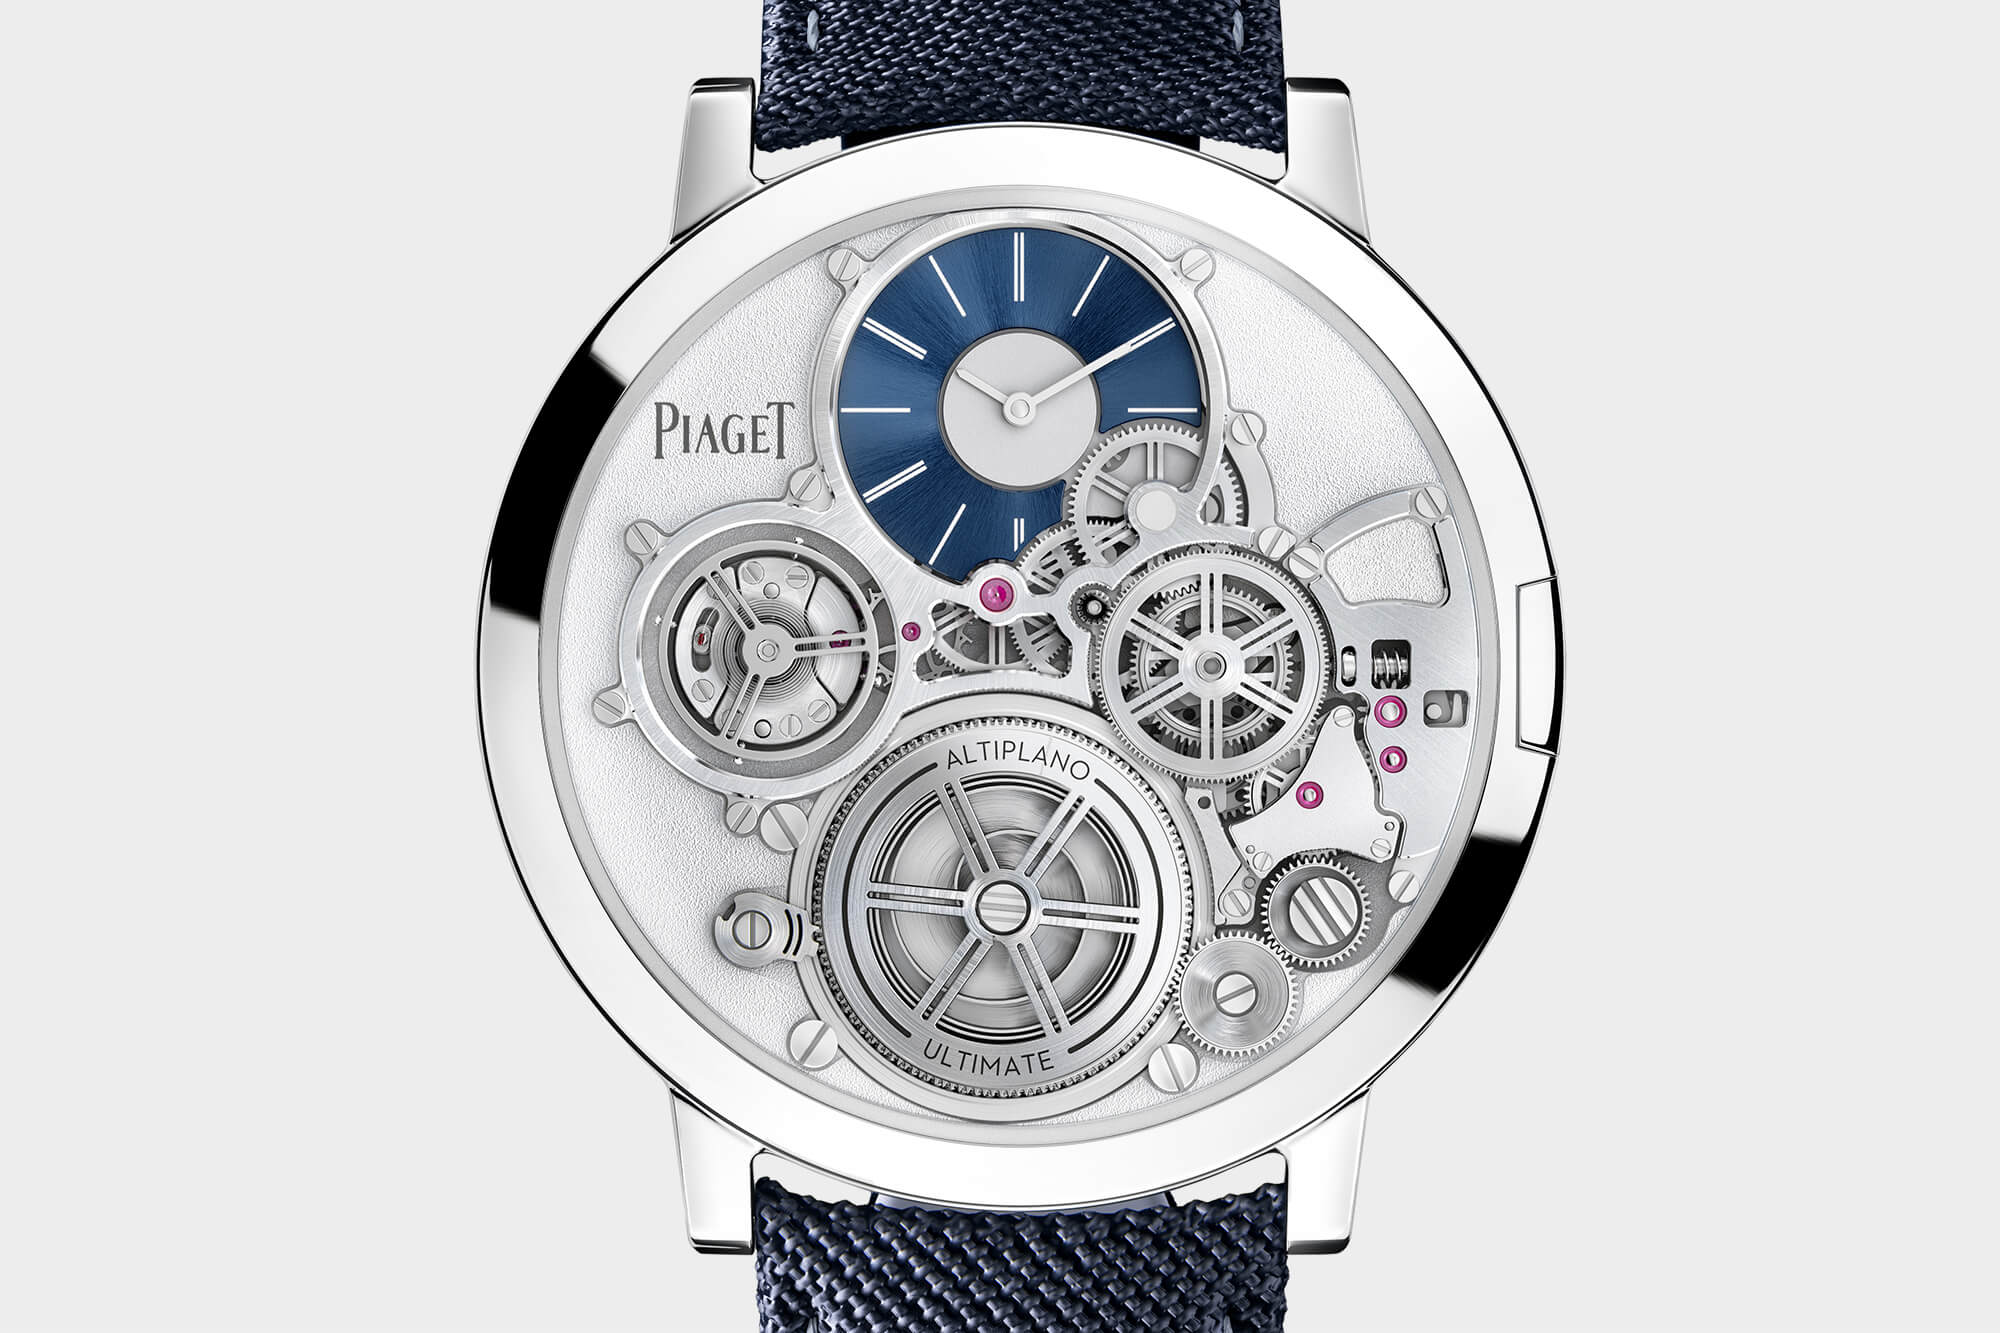 Piaget-Altiplano-Ultimate-Concept-Watch-Wonders-2020.jpg